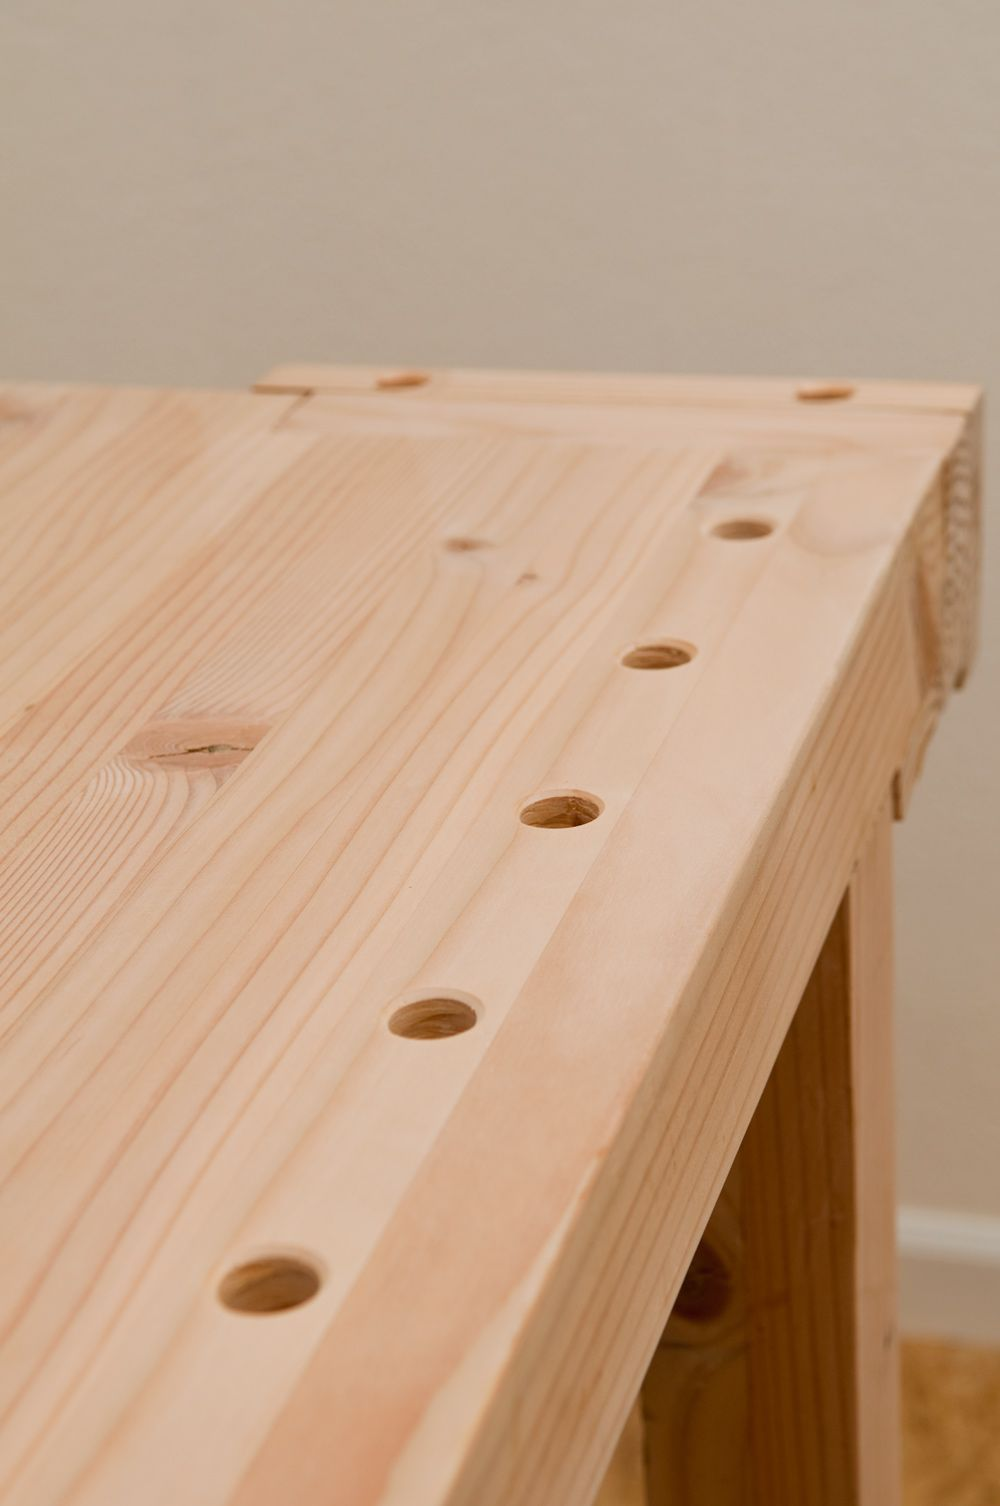 Butcher Block Workbench >> How to Drill Perfectly Vertical Bench Dog Holes in Your ...